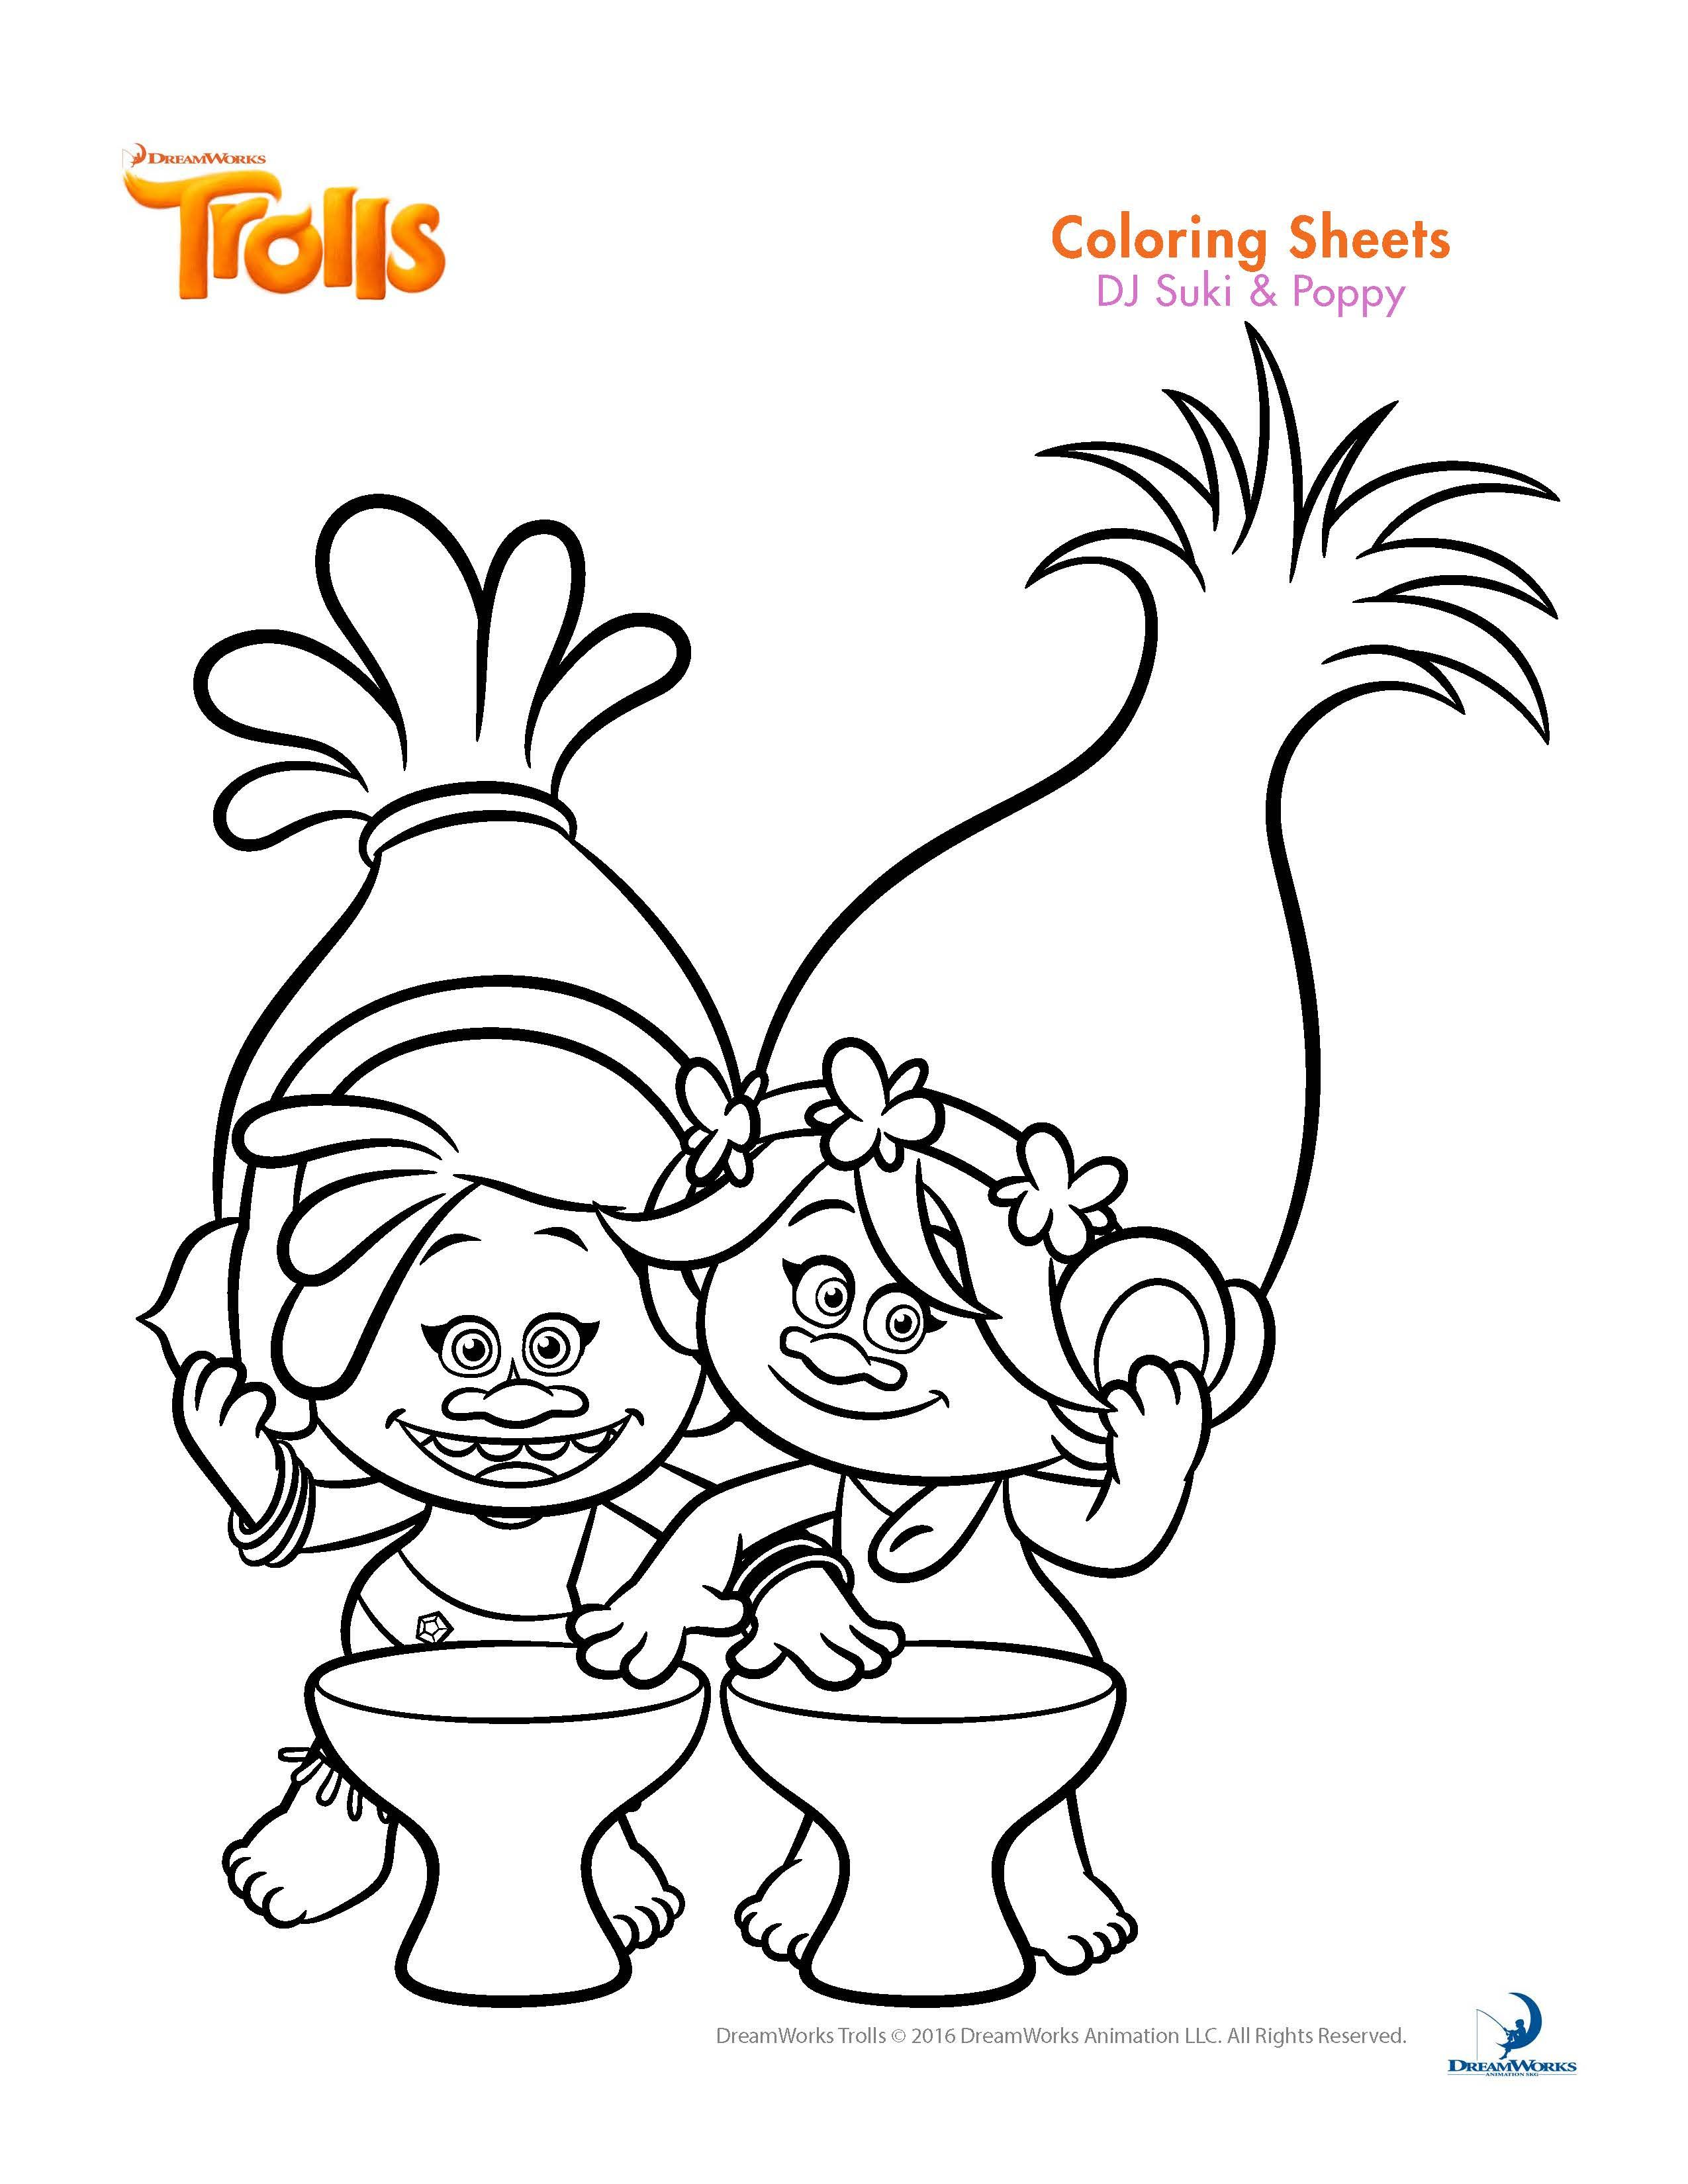 Frozen Coloring Pages Trolls : Trolls coloring sheets and printable activity a